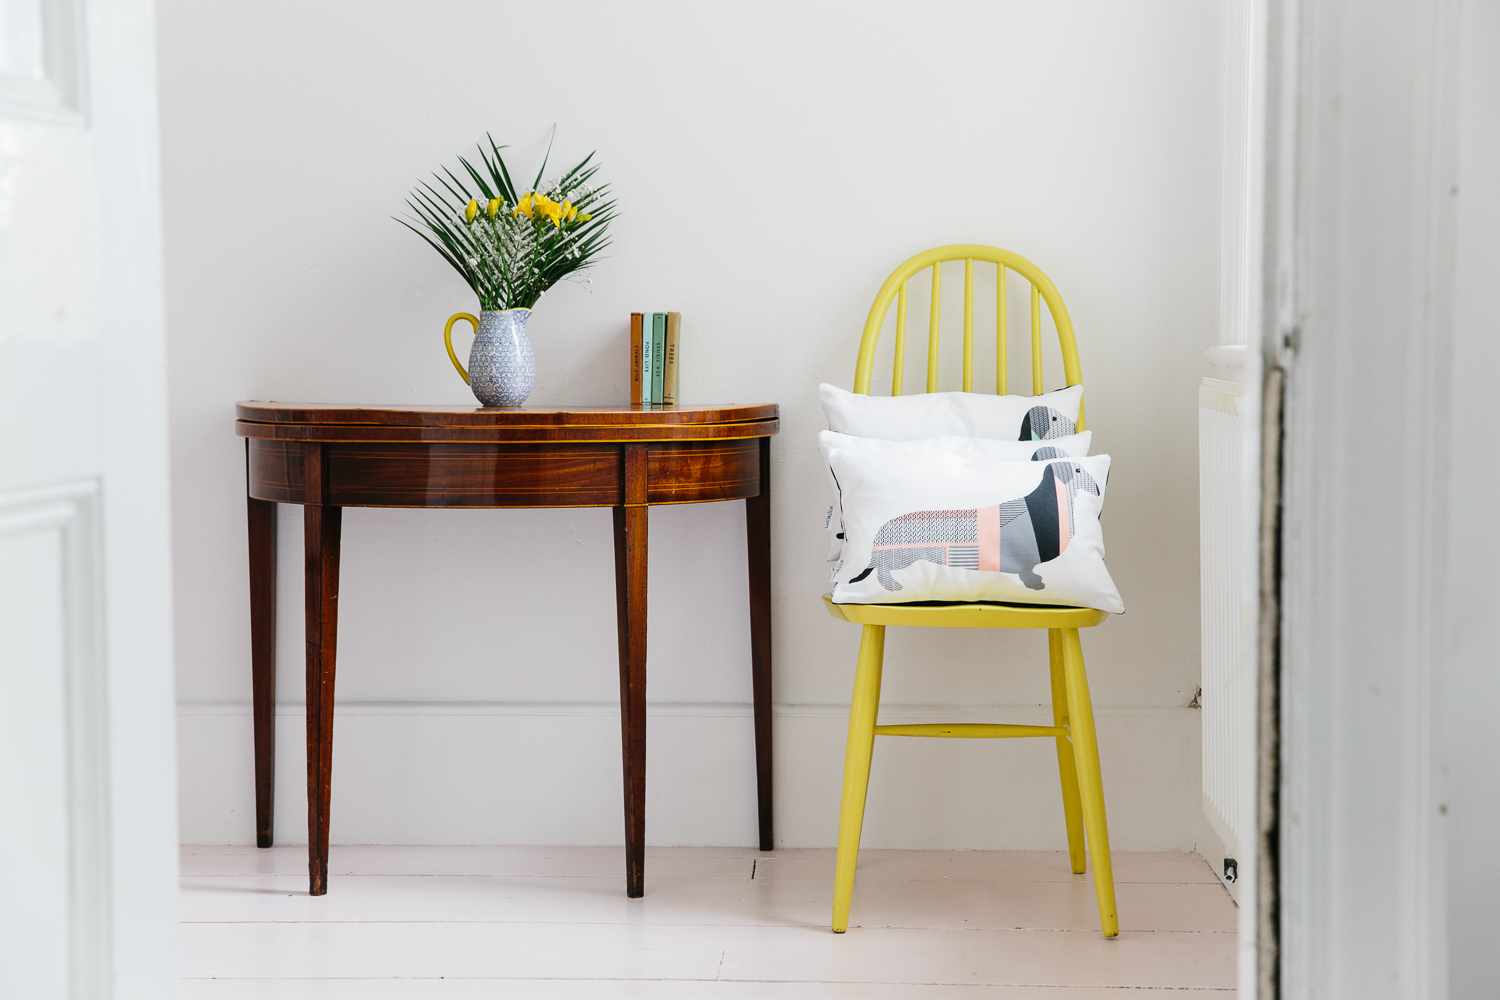 Lucy Alice Designs Product Interior Photography Folkestone Kent